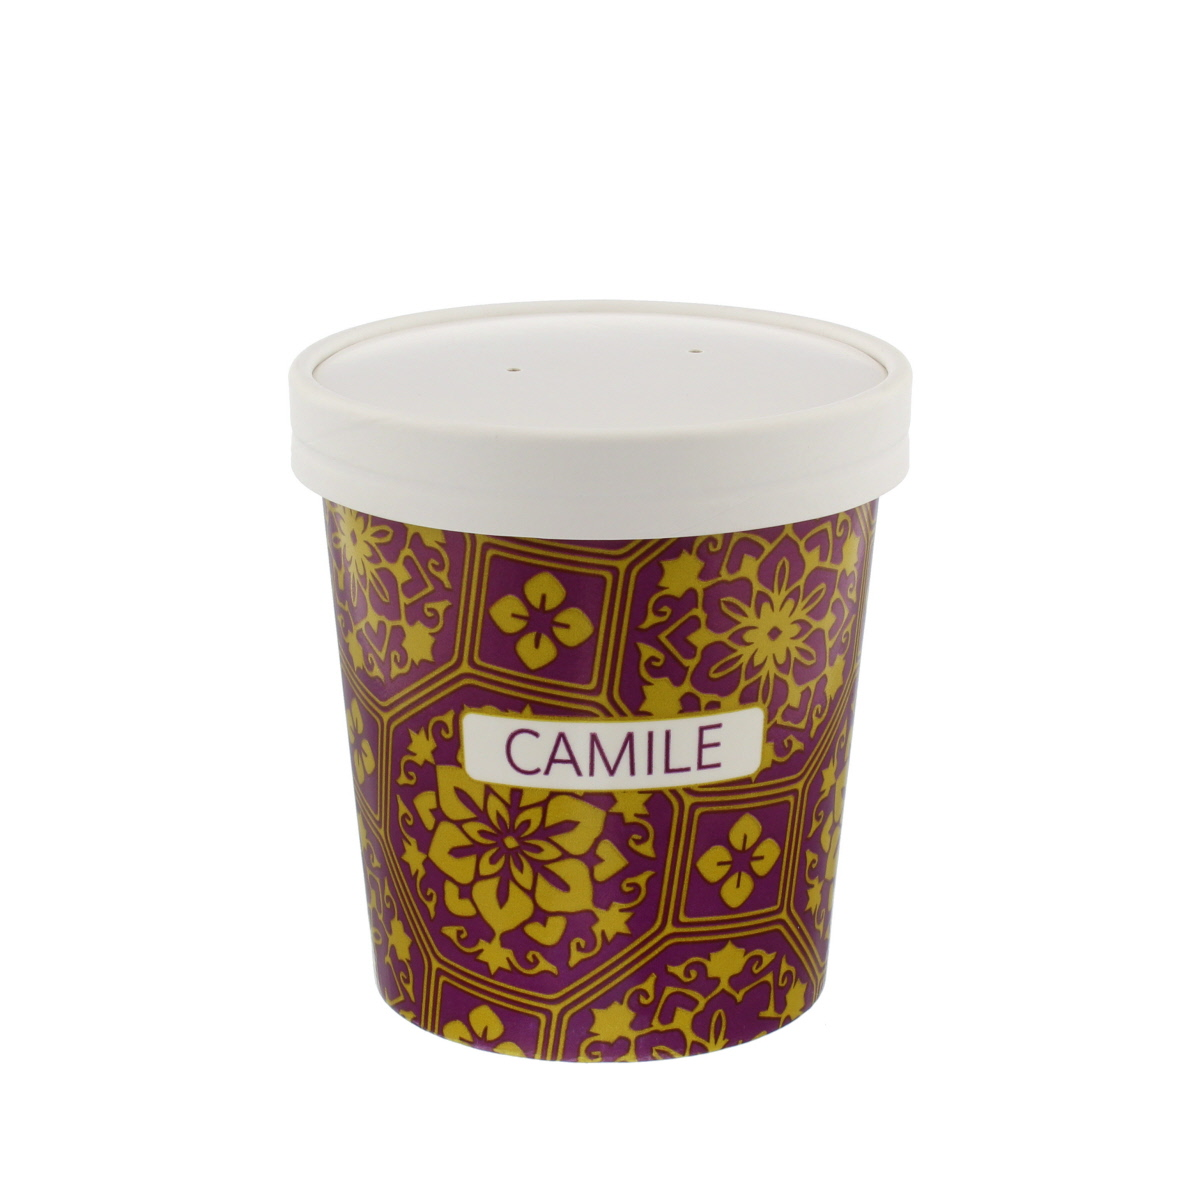 Camile Thai Curry Sauce Cup